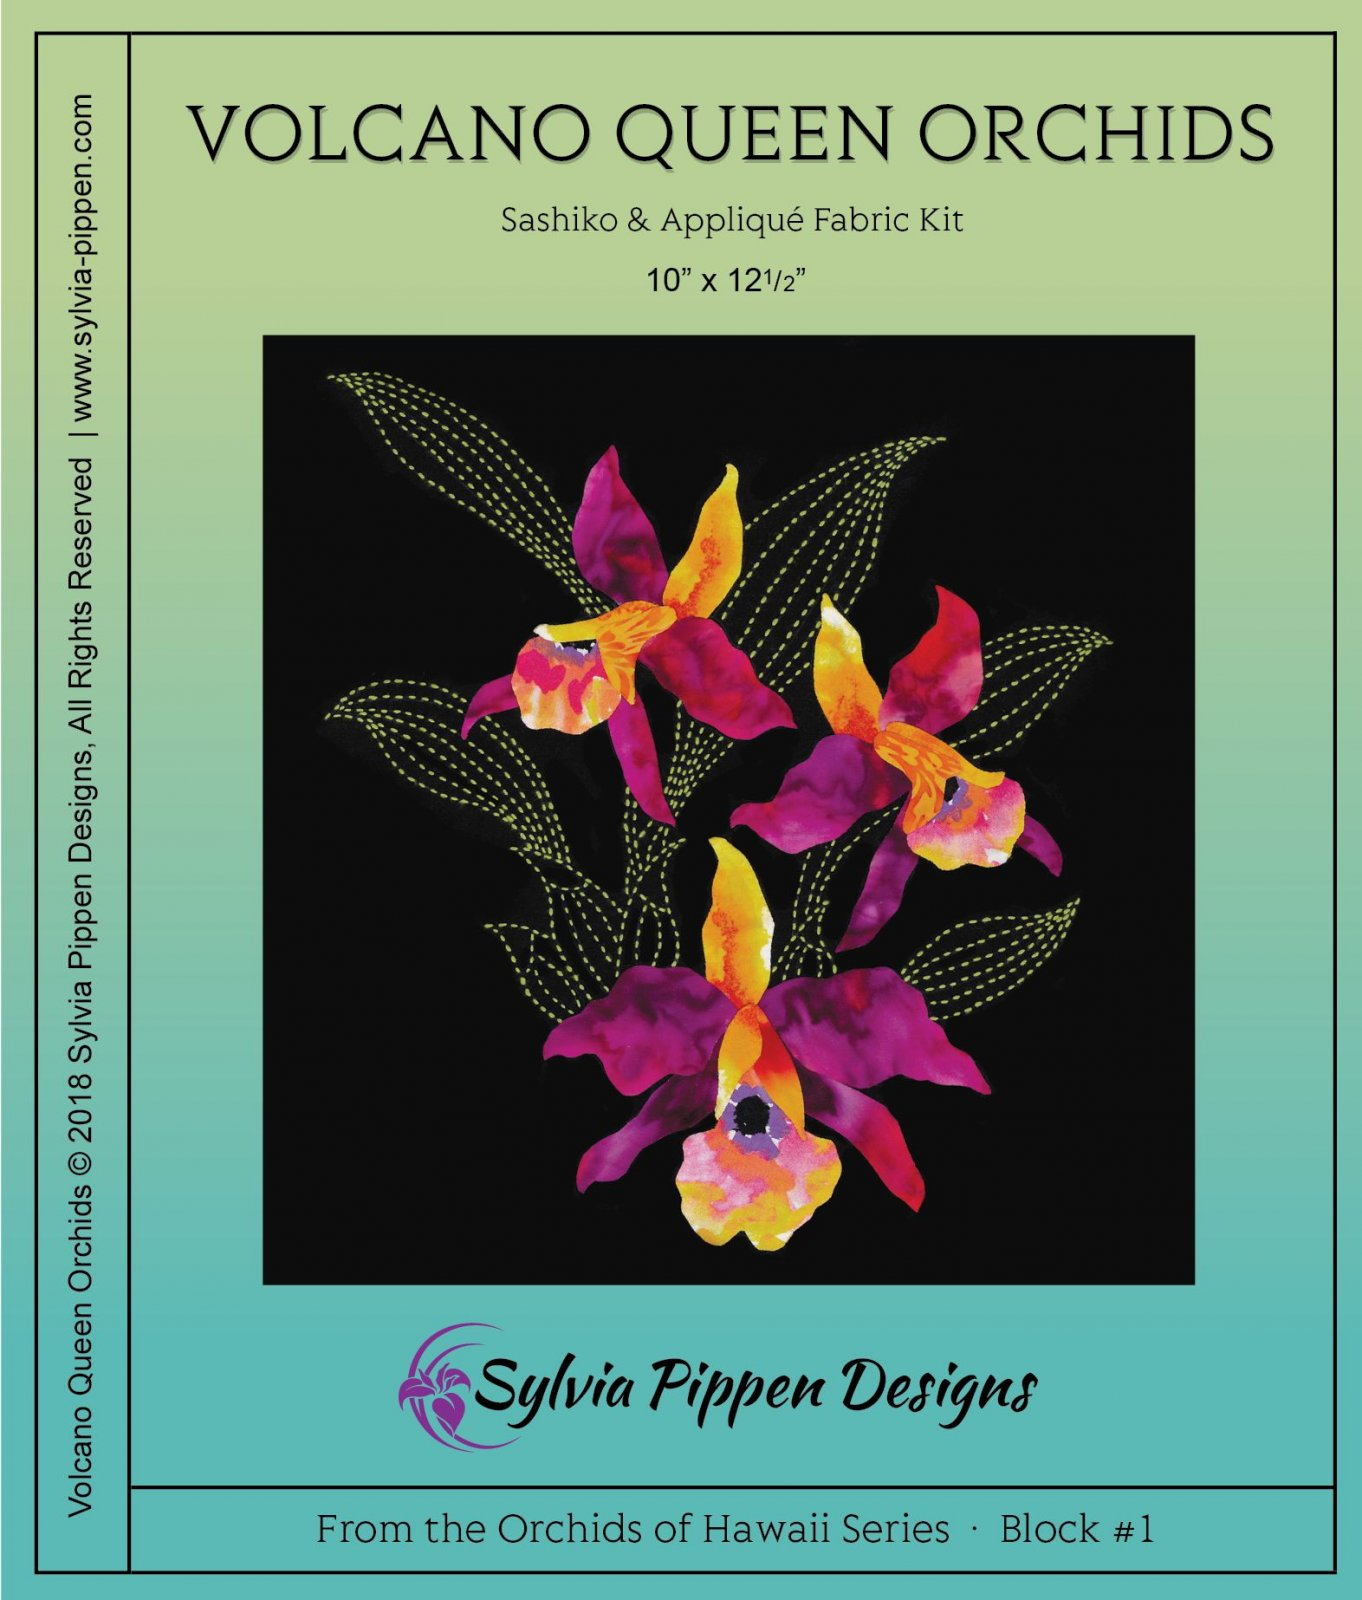 Volcano Queen Orchids Sashiko & Applique Fabric Kit from the Orchids of Hawaii  Series